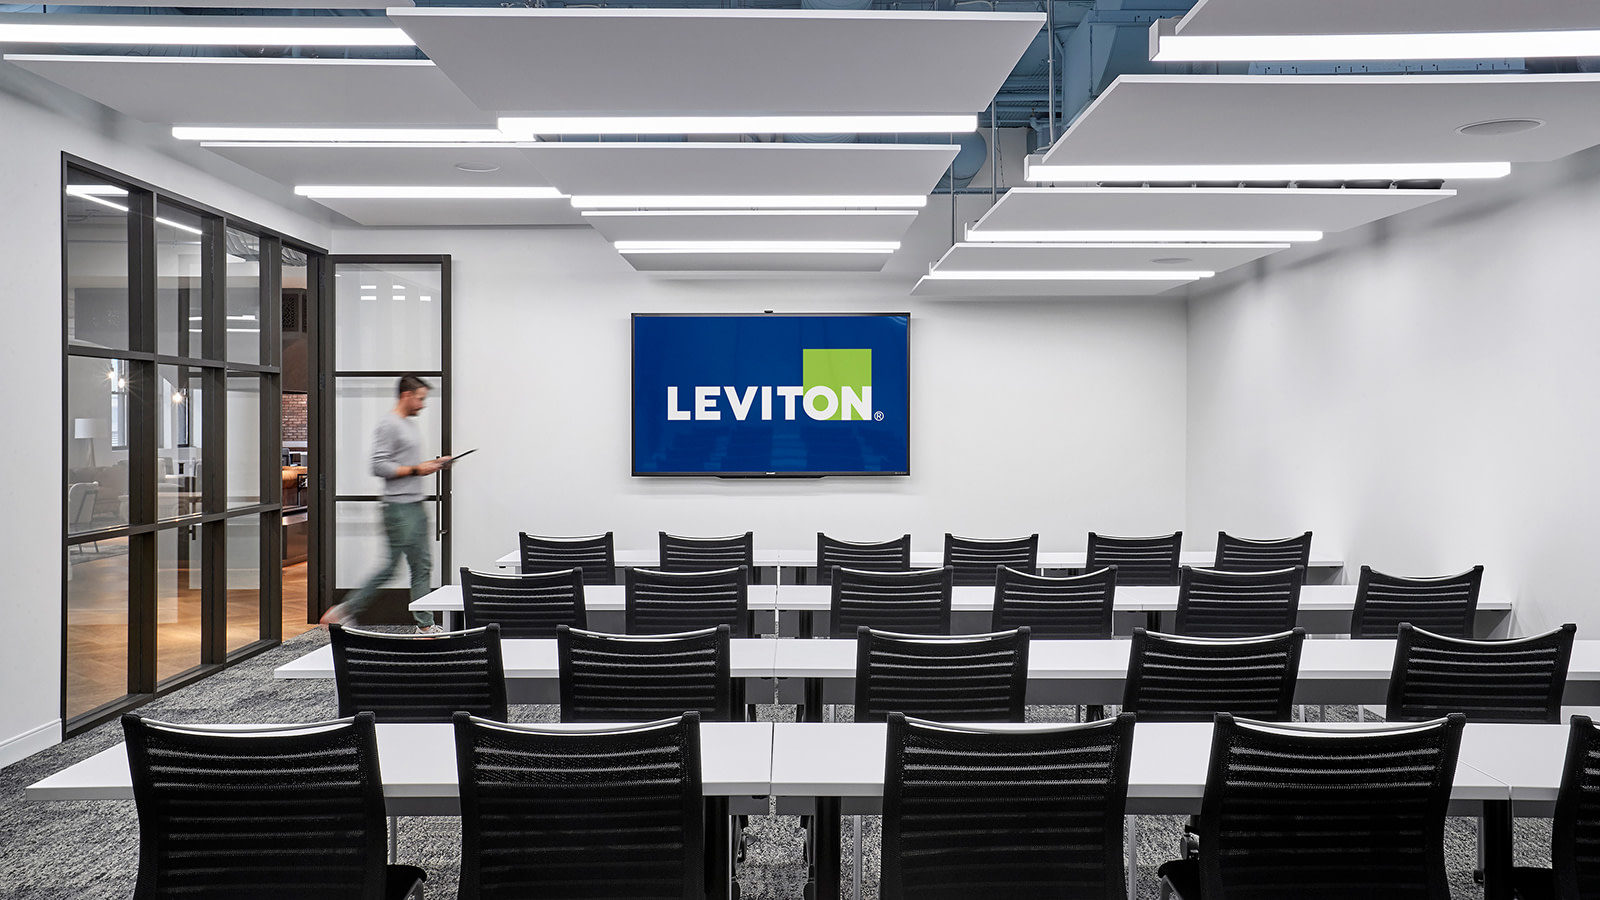 Leviton training and conference space